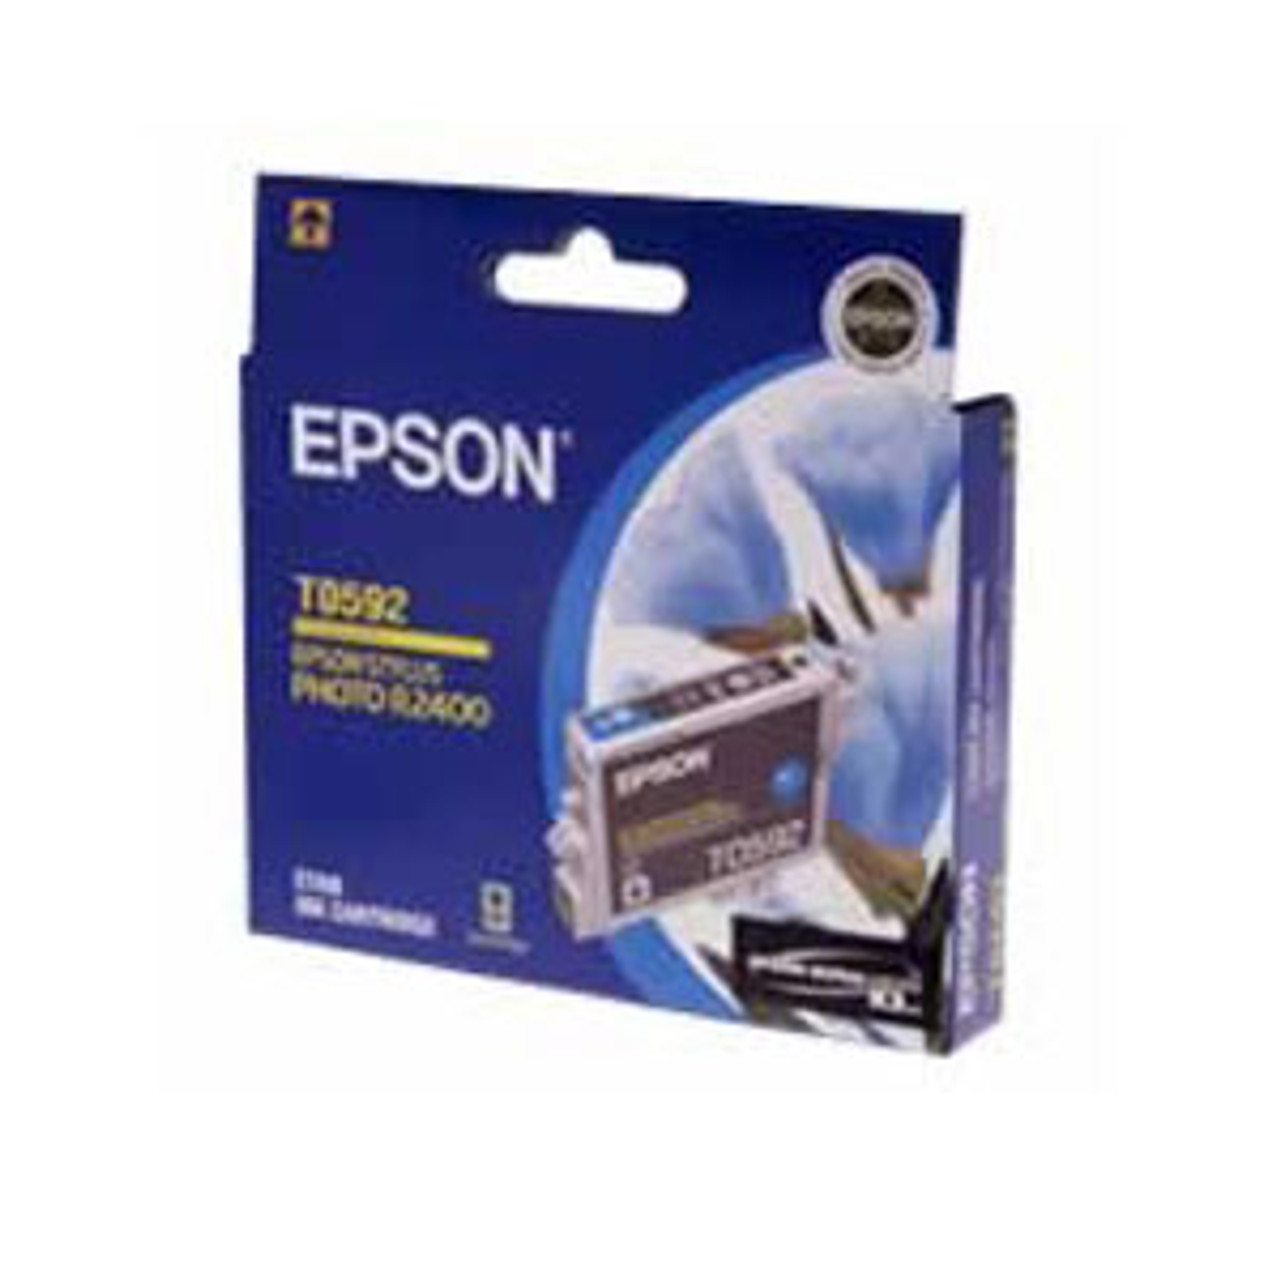 Image for Epson T0592 Cyan Ink Cart 450 pages Cyan CX Computer Superstore